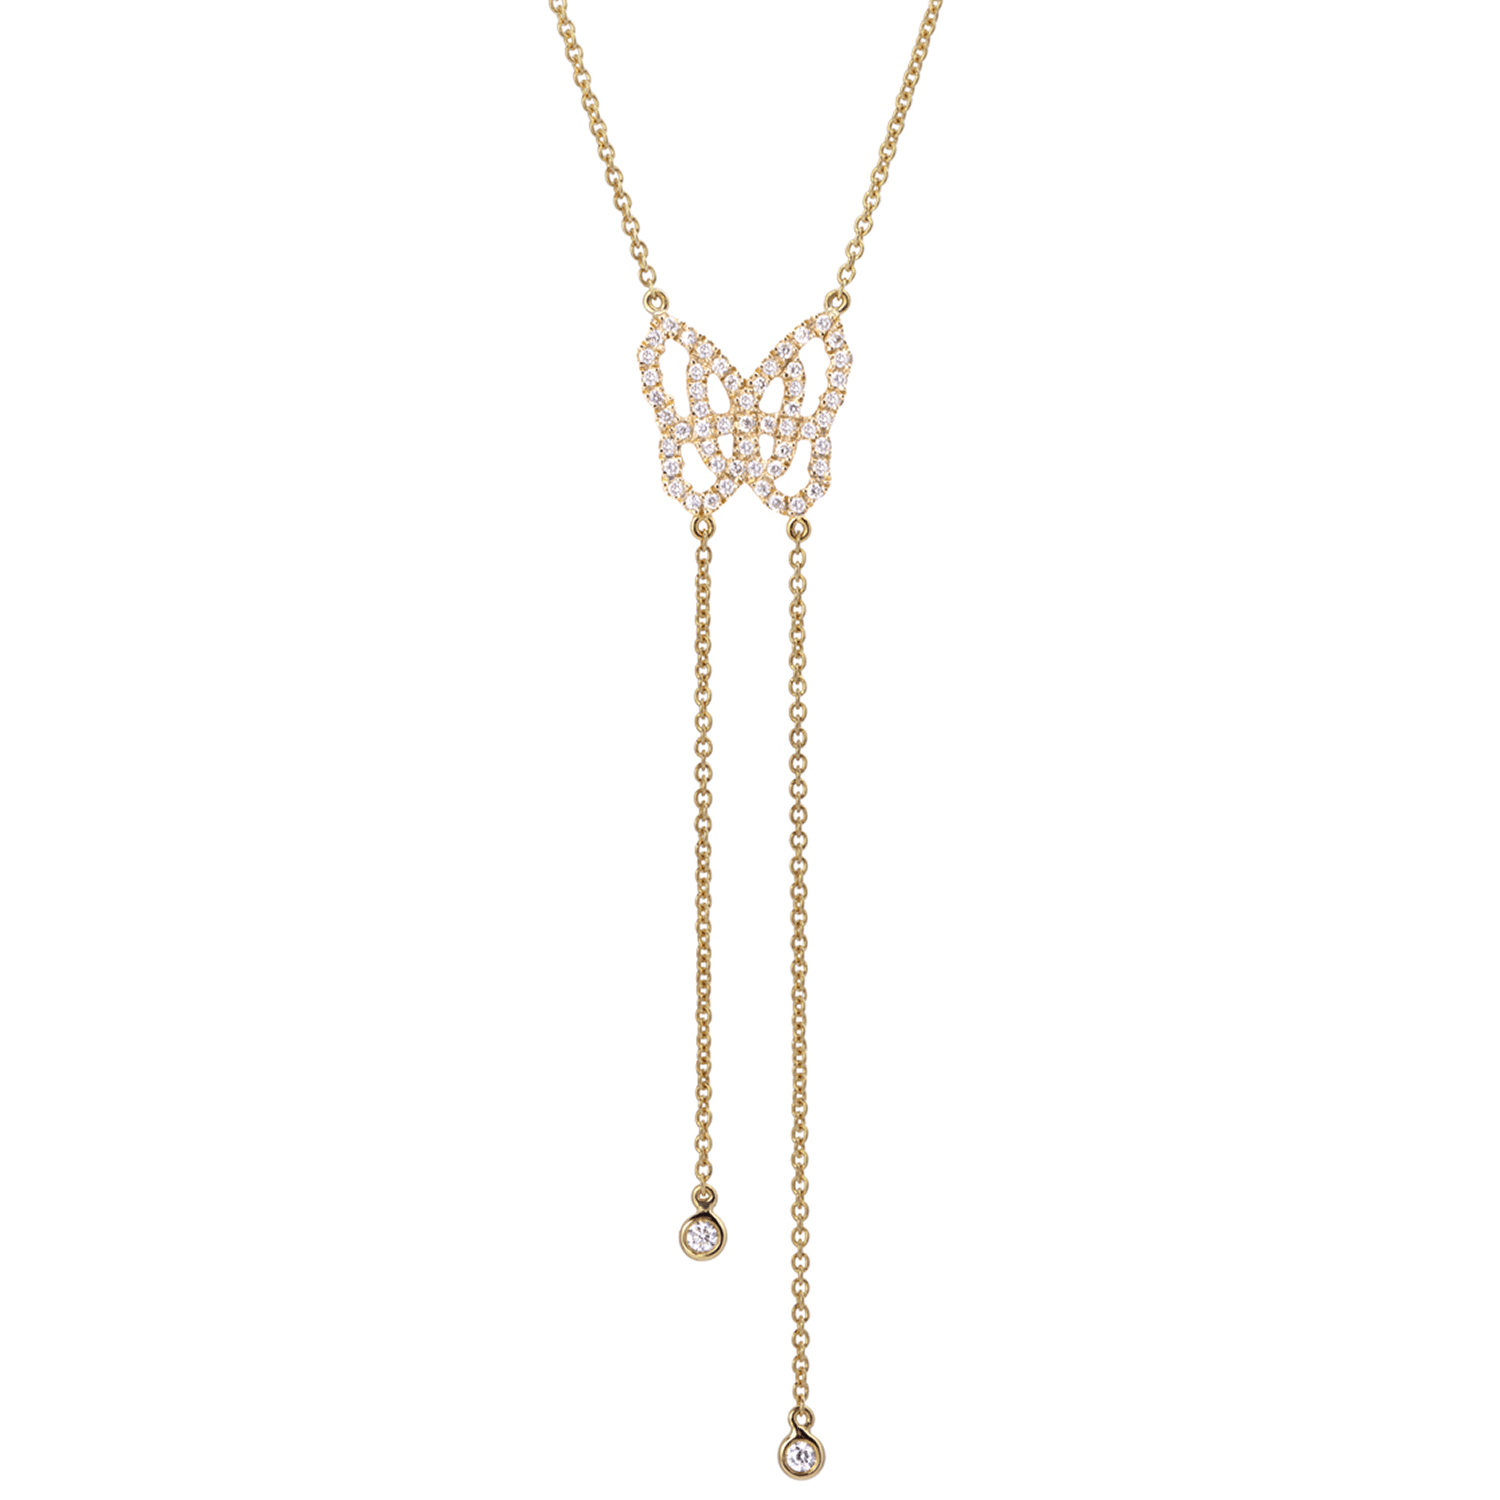 Collier Mini en Or Gris 18 k Pavé de Diamants